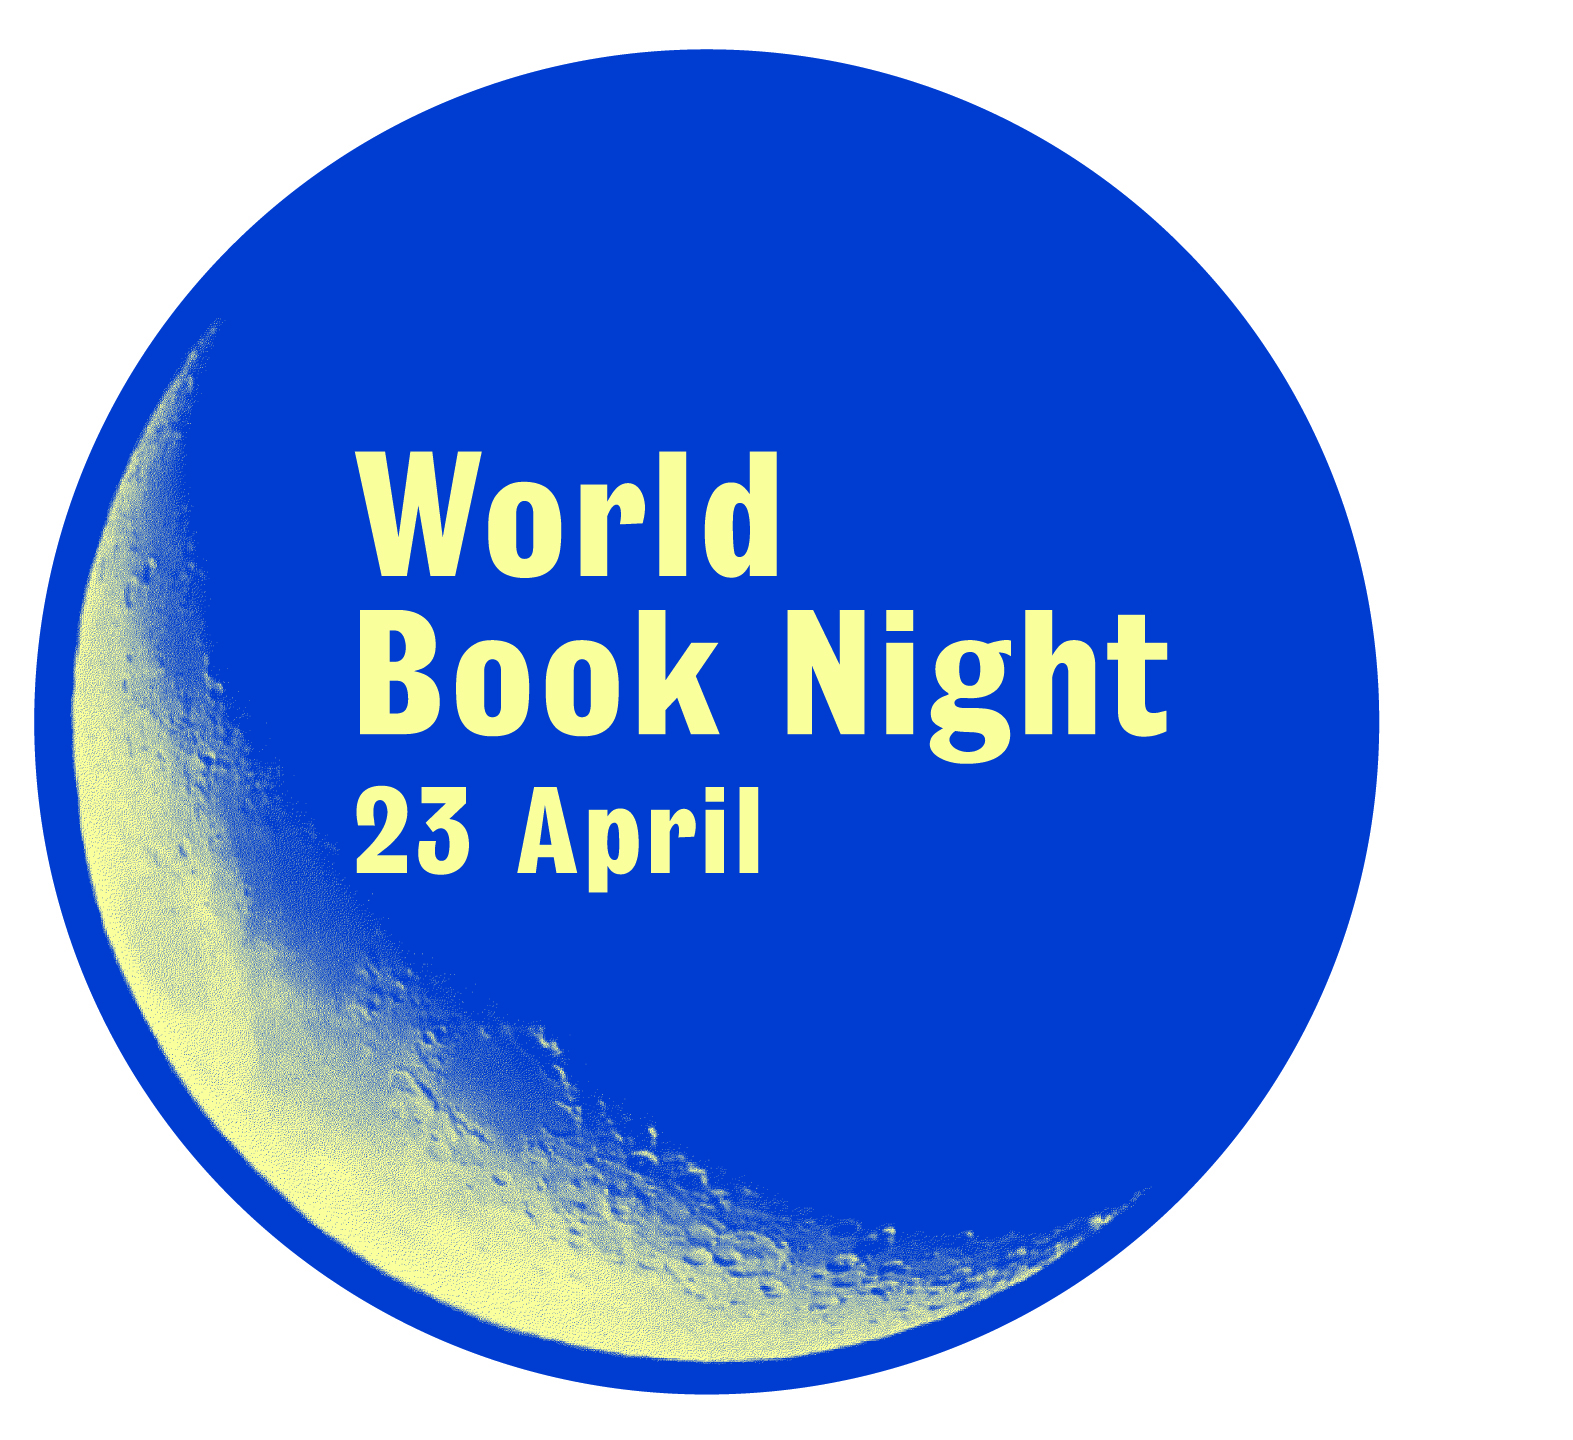 World Book Night 2016: Q&A with Leigh Bardugo